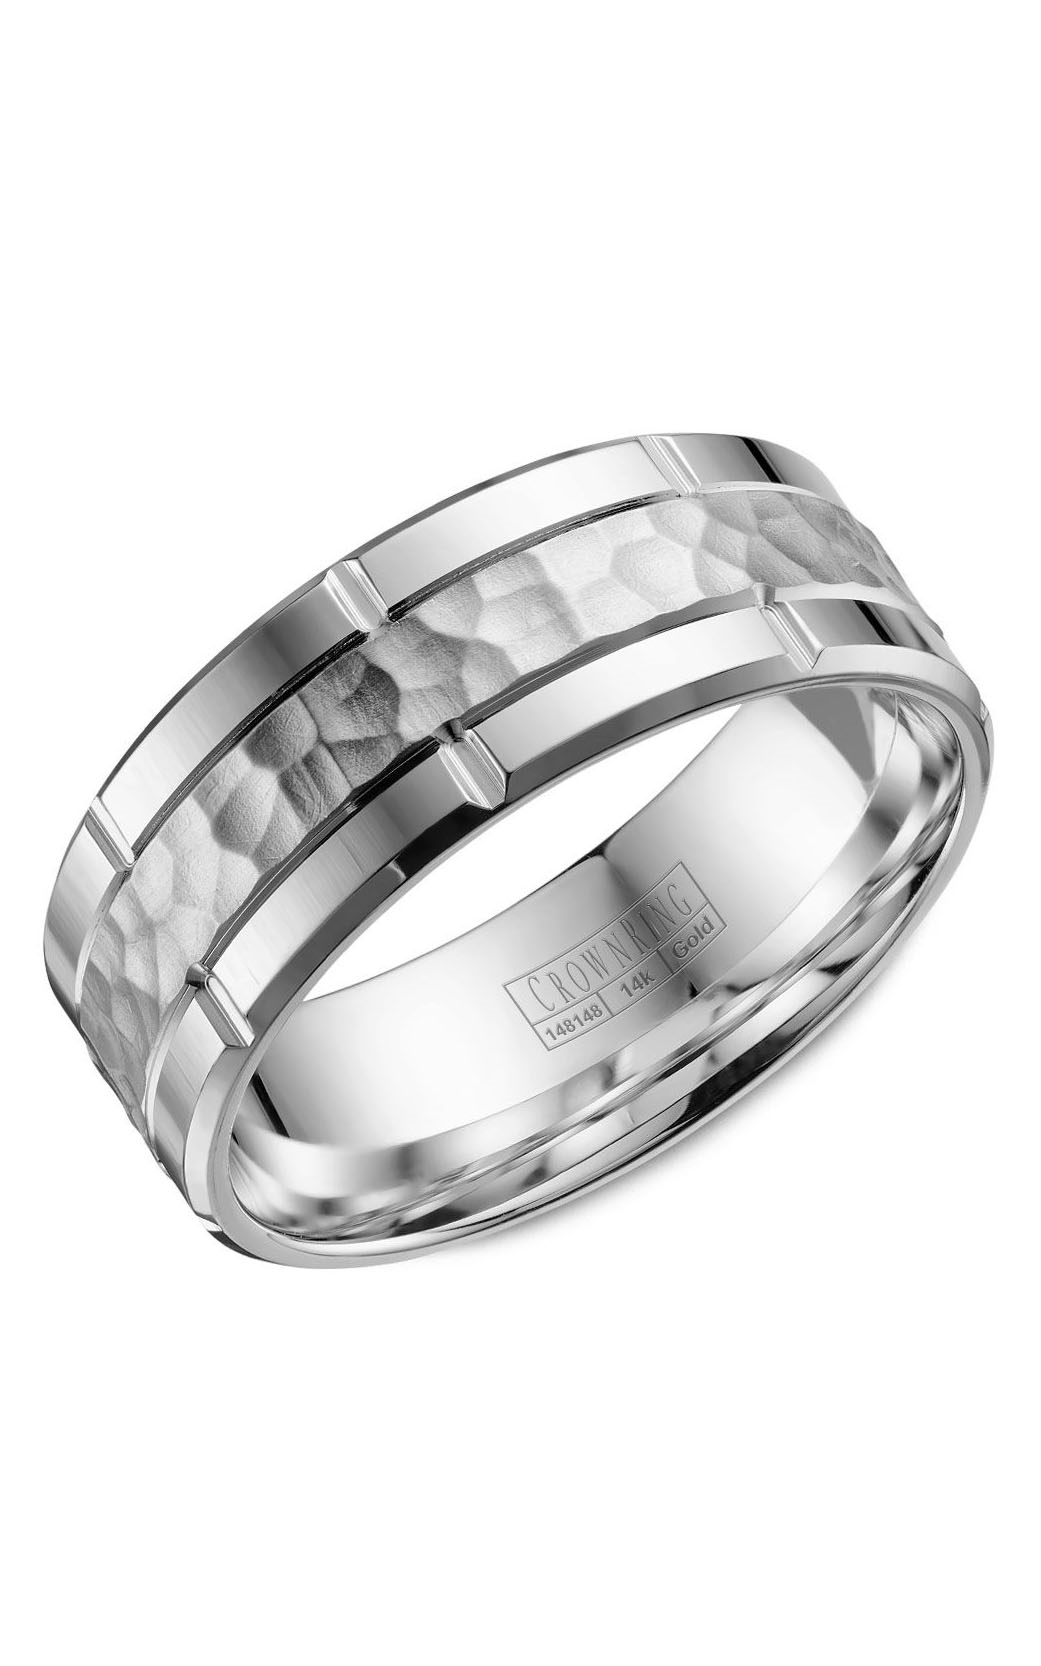 Crown Ring Men's Wedding Band WB-040C8W product image